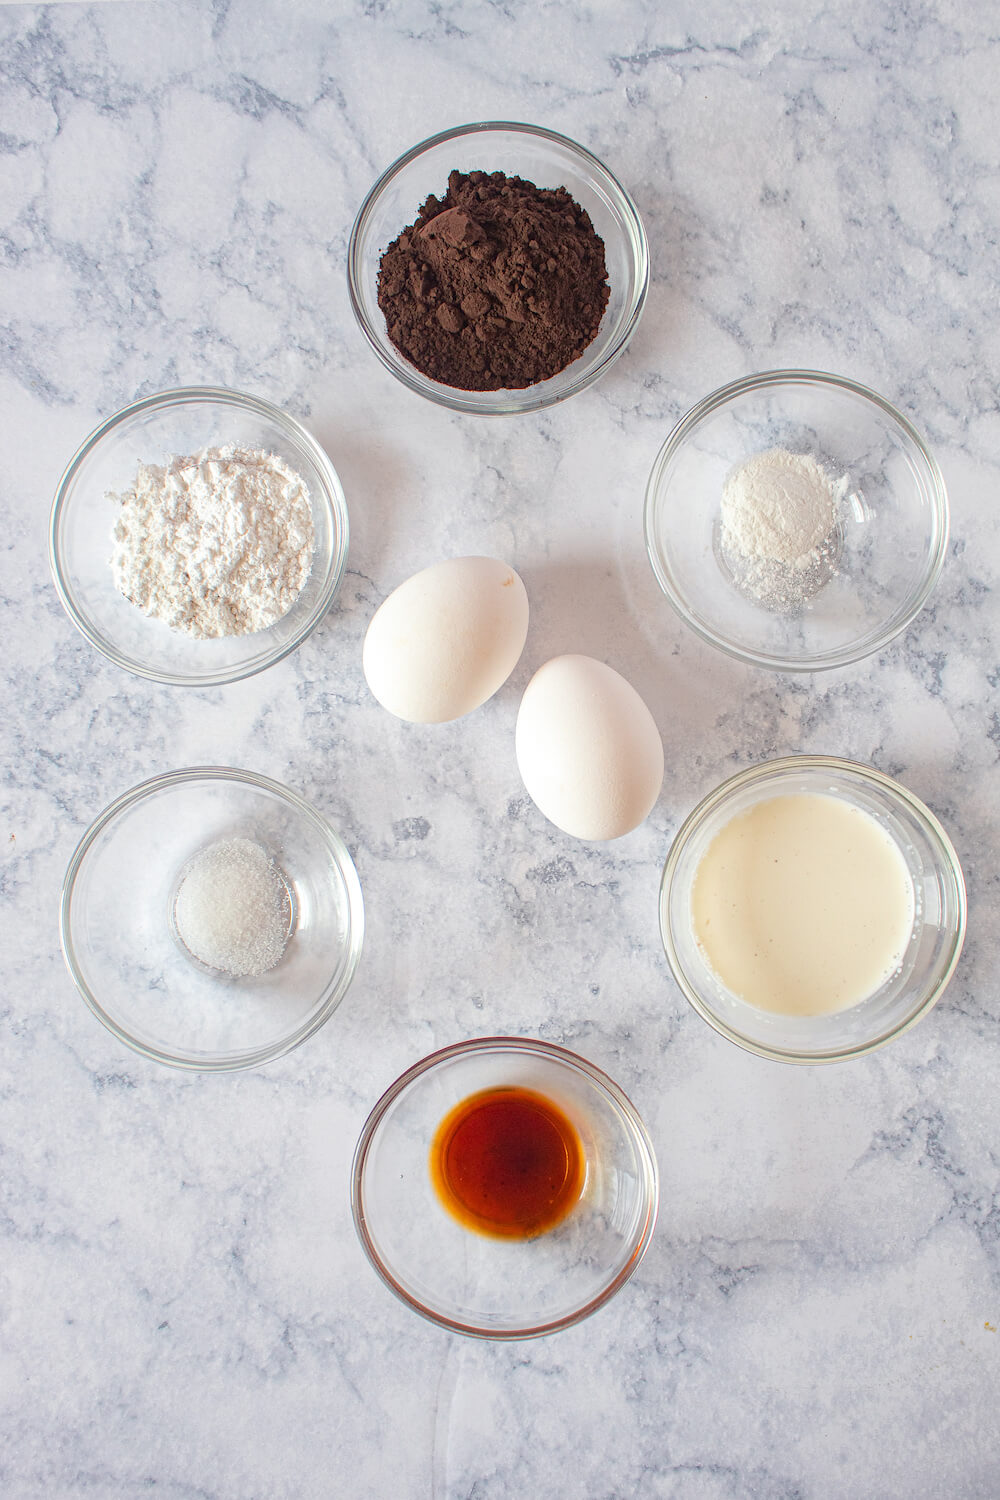 Ingredients for our delicious keto lava cake recipe prepped and laid out on the counter.